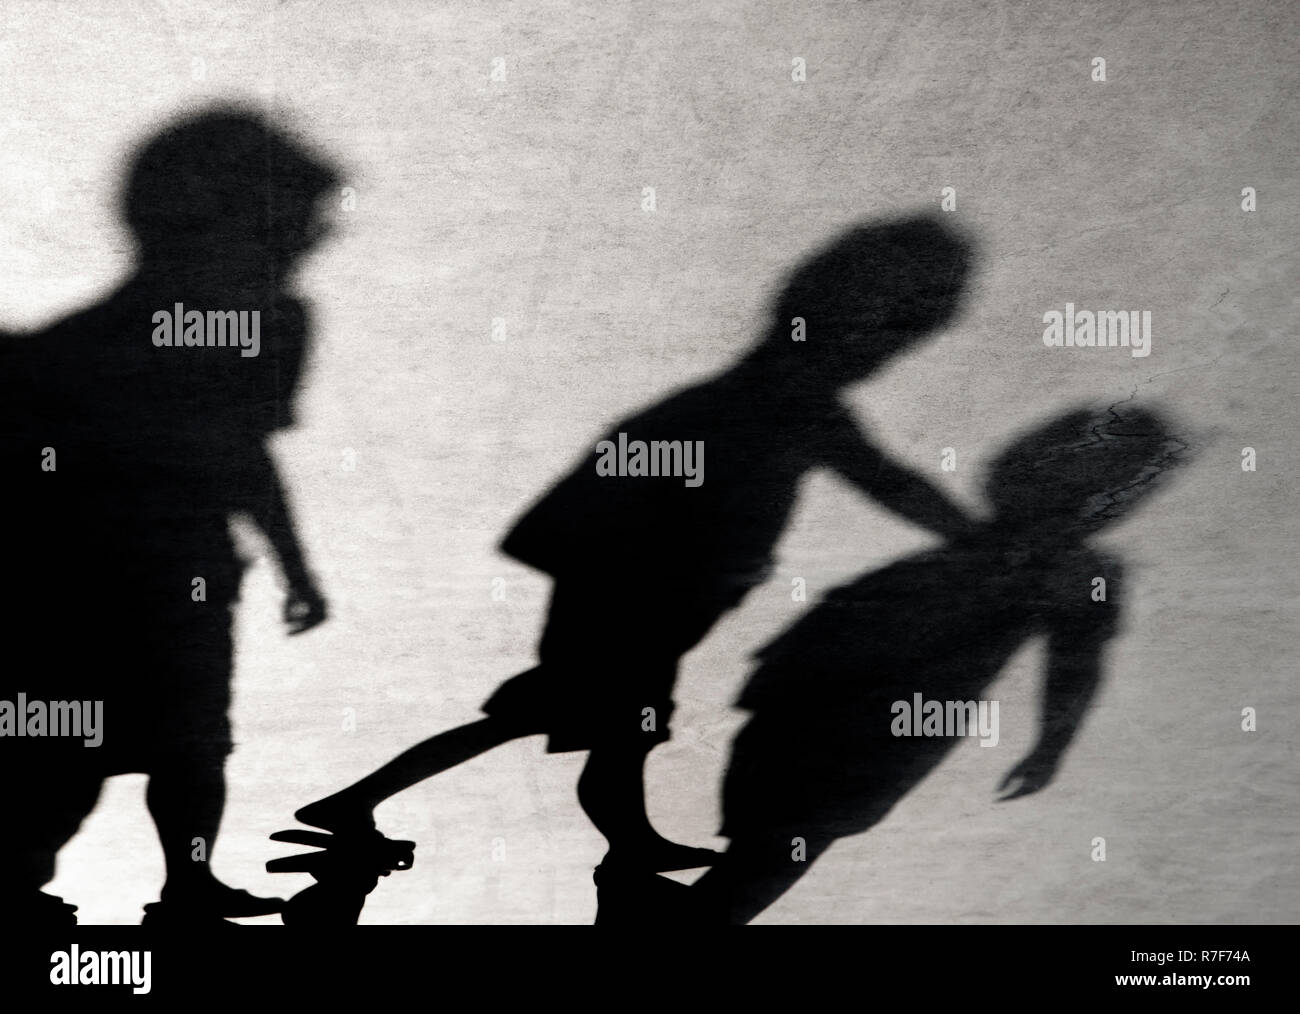 Blurry shadows of three boys friends walking together - Stock Image